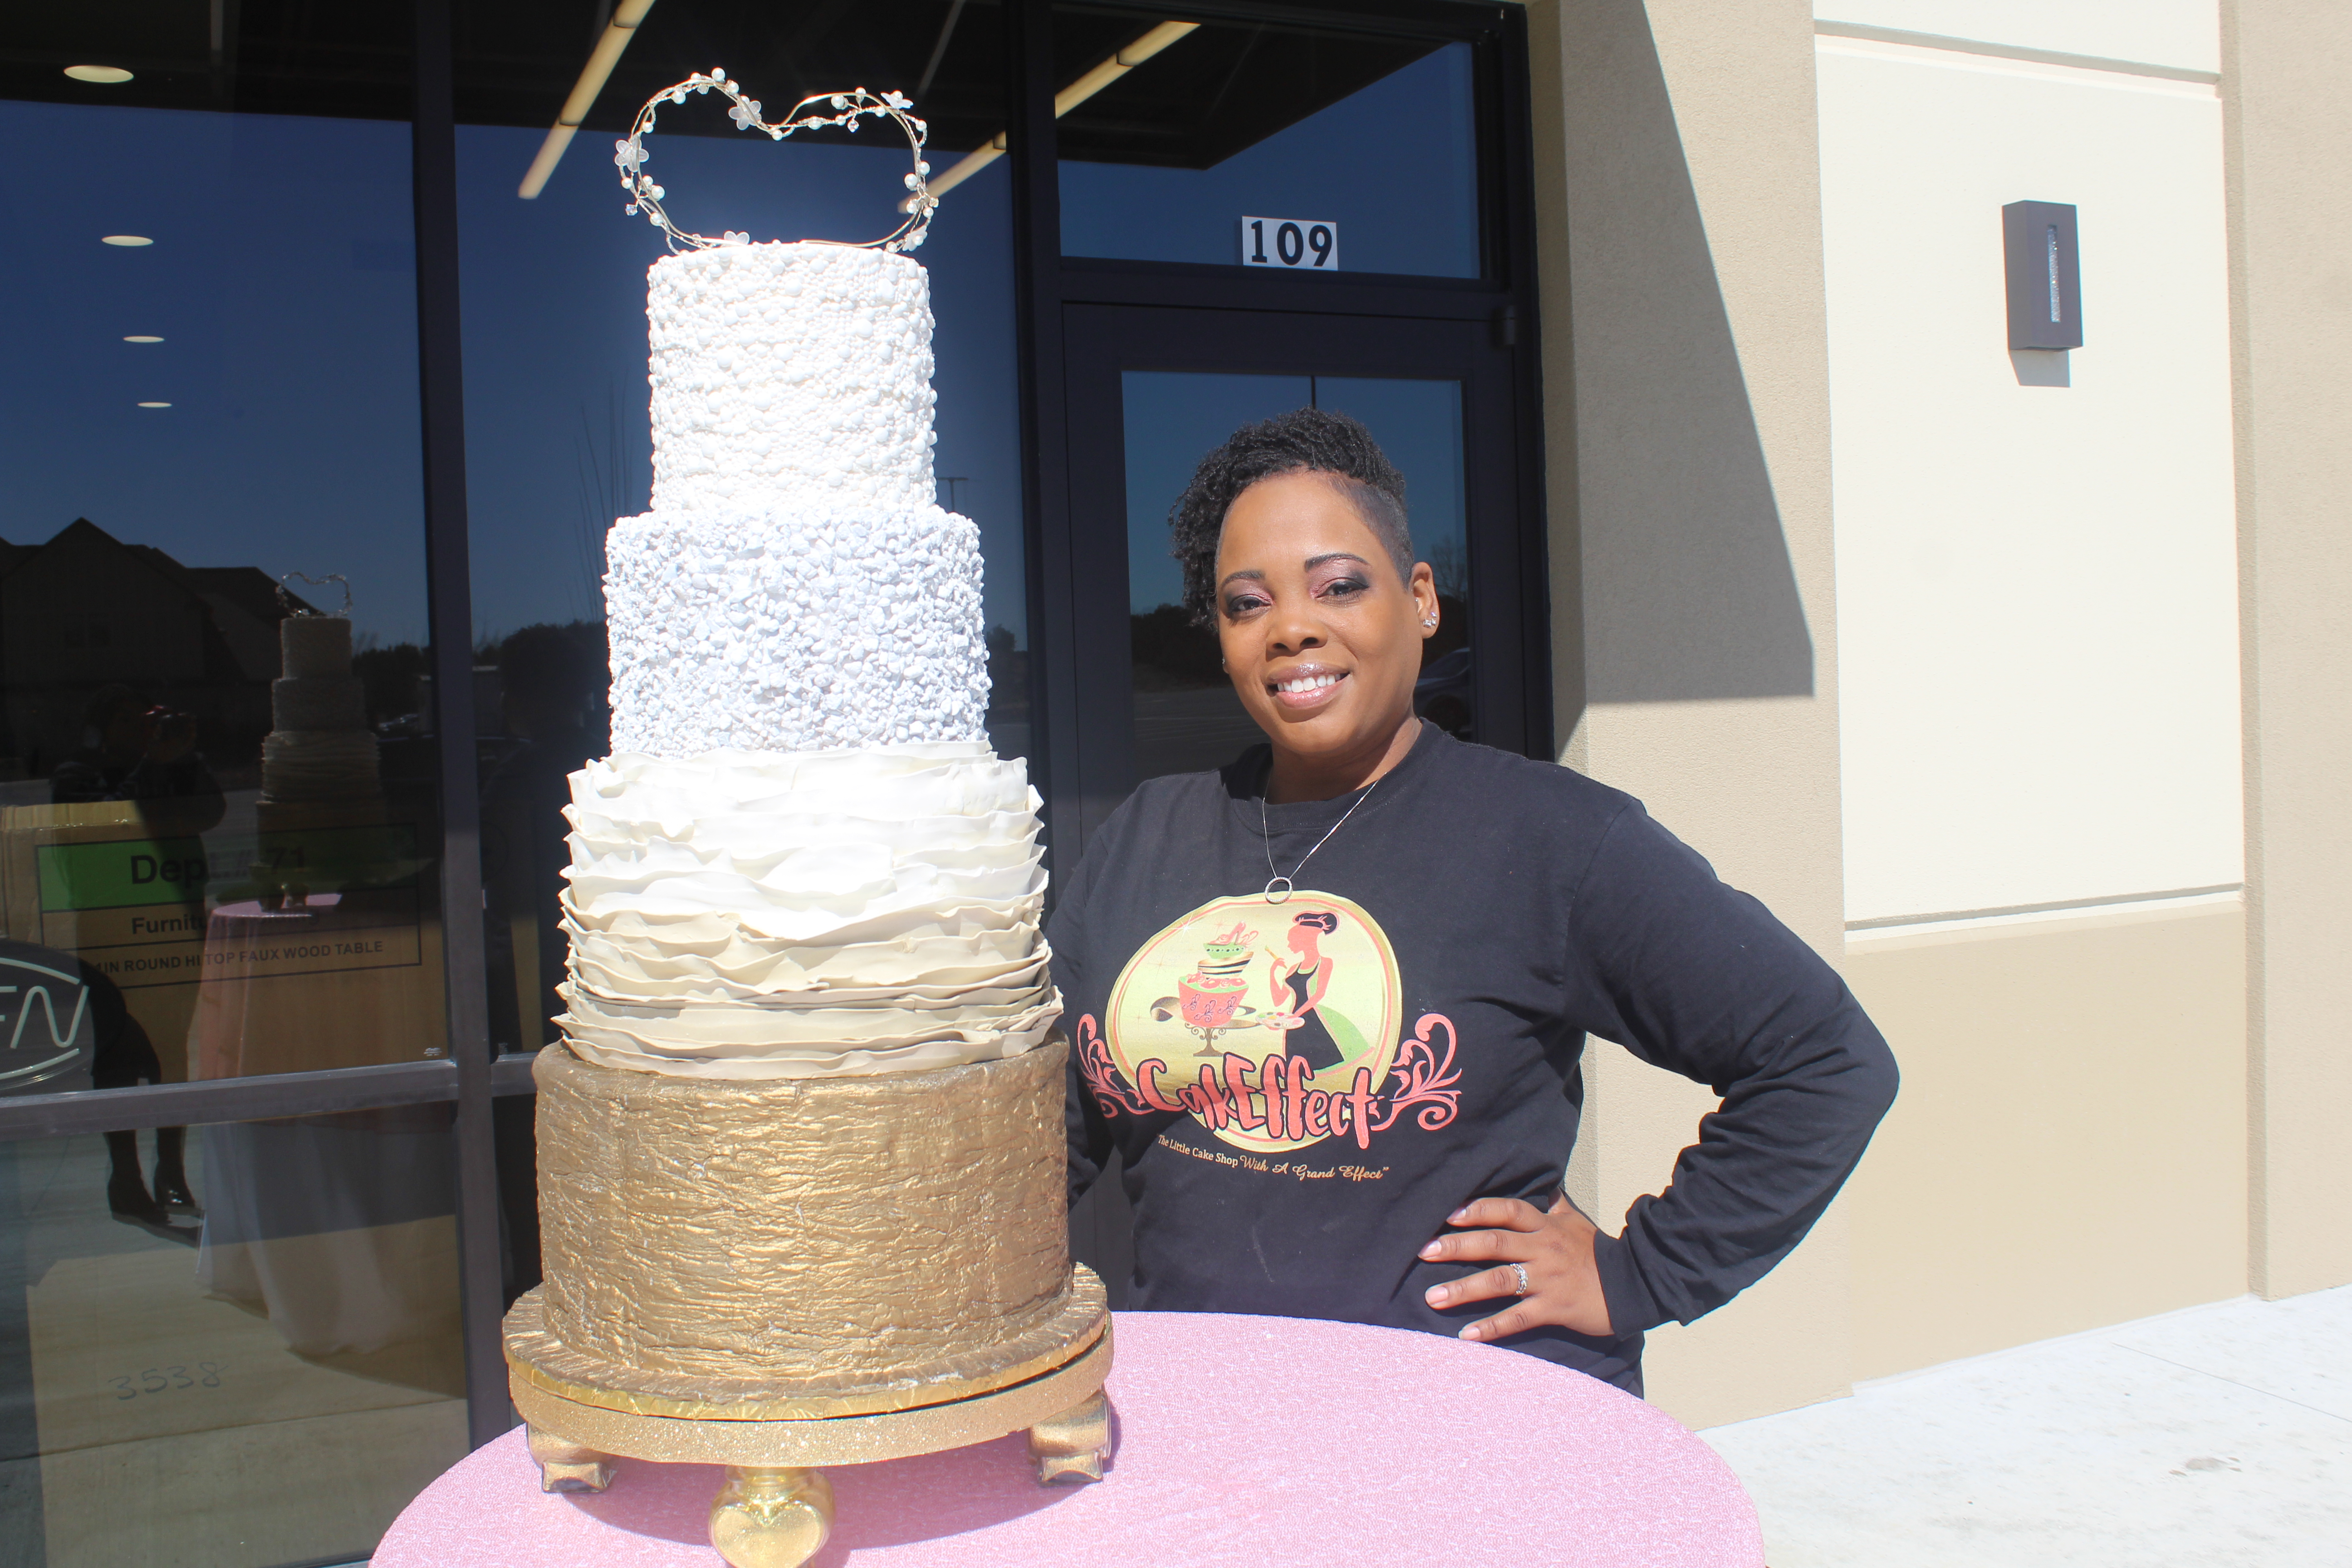 CakEffect opening new location in Hoover on March 9